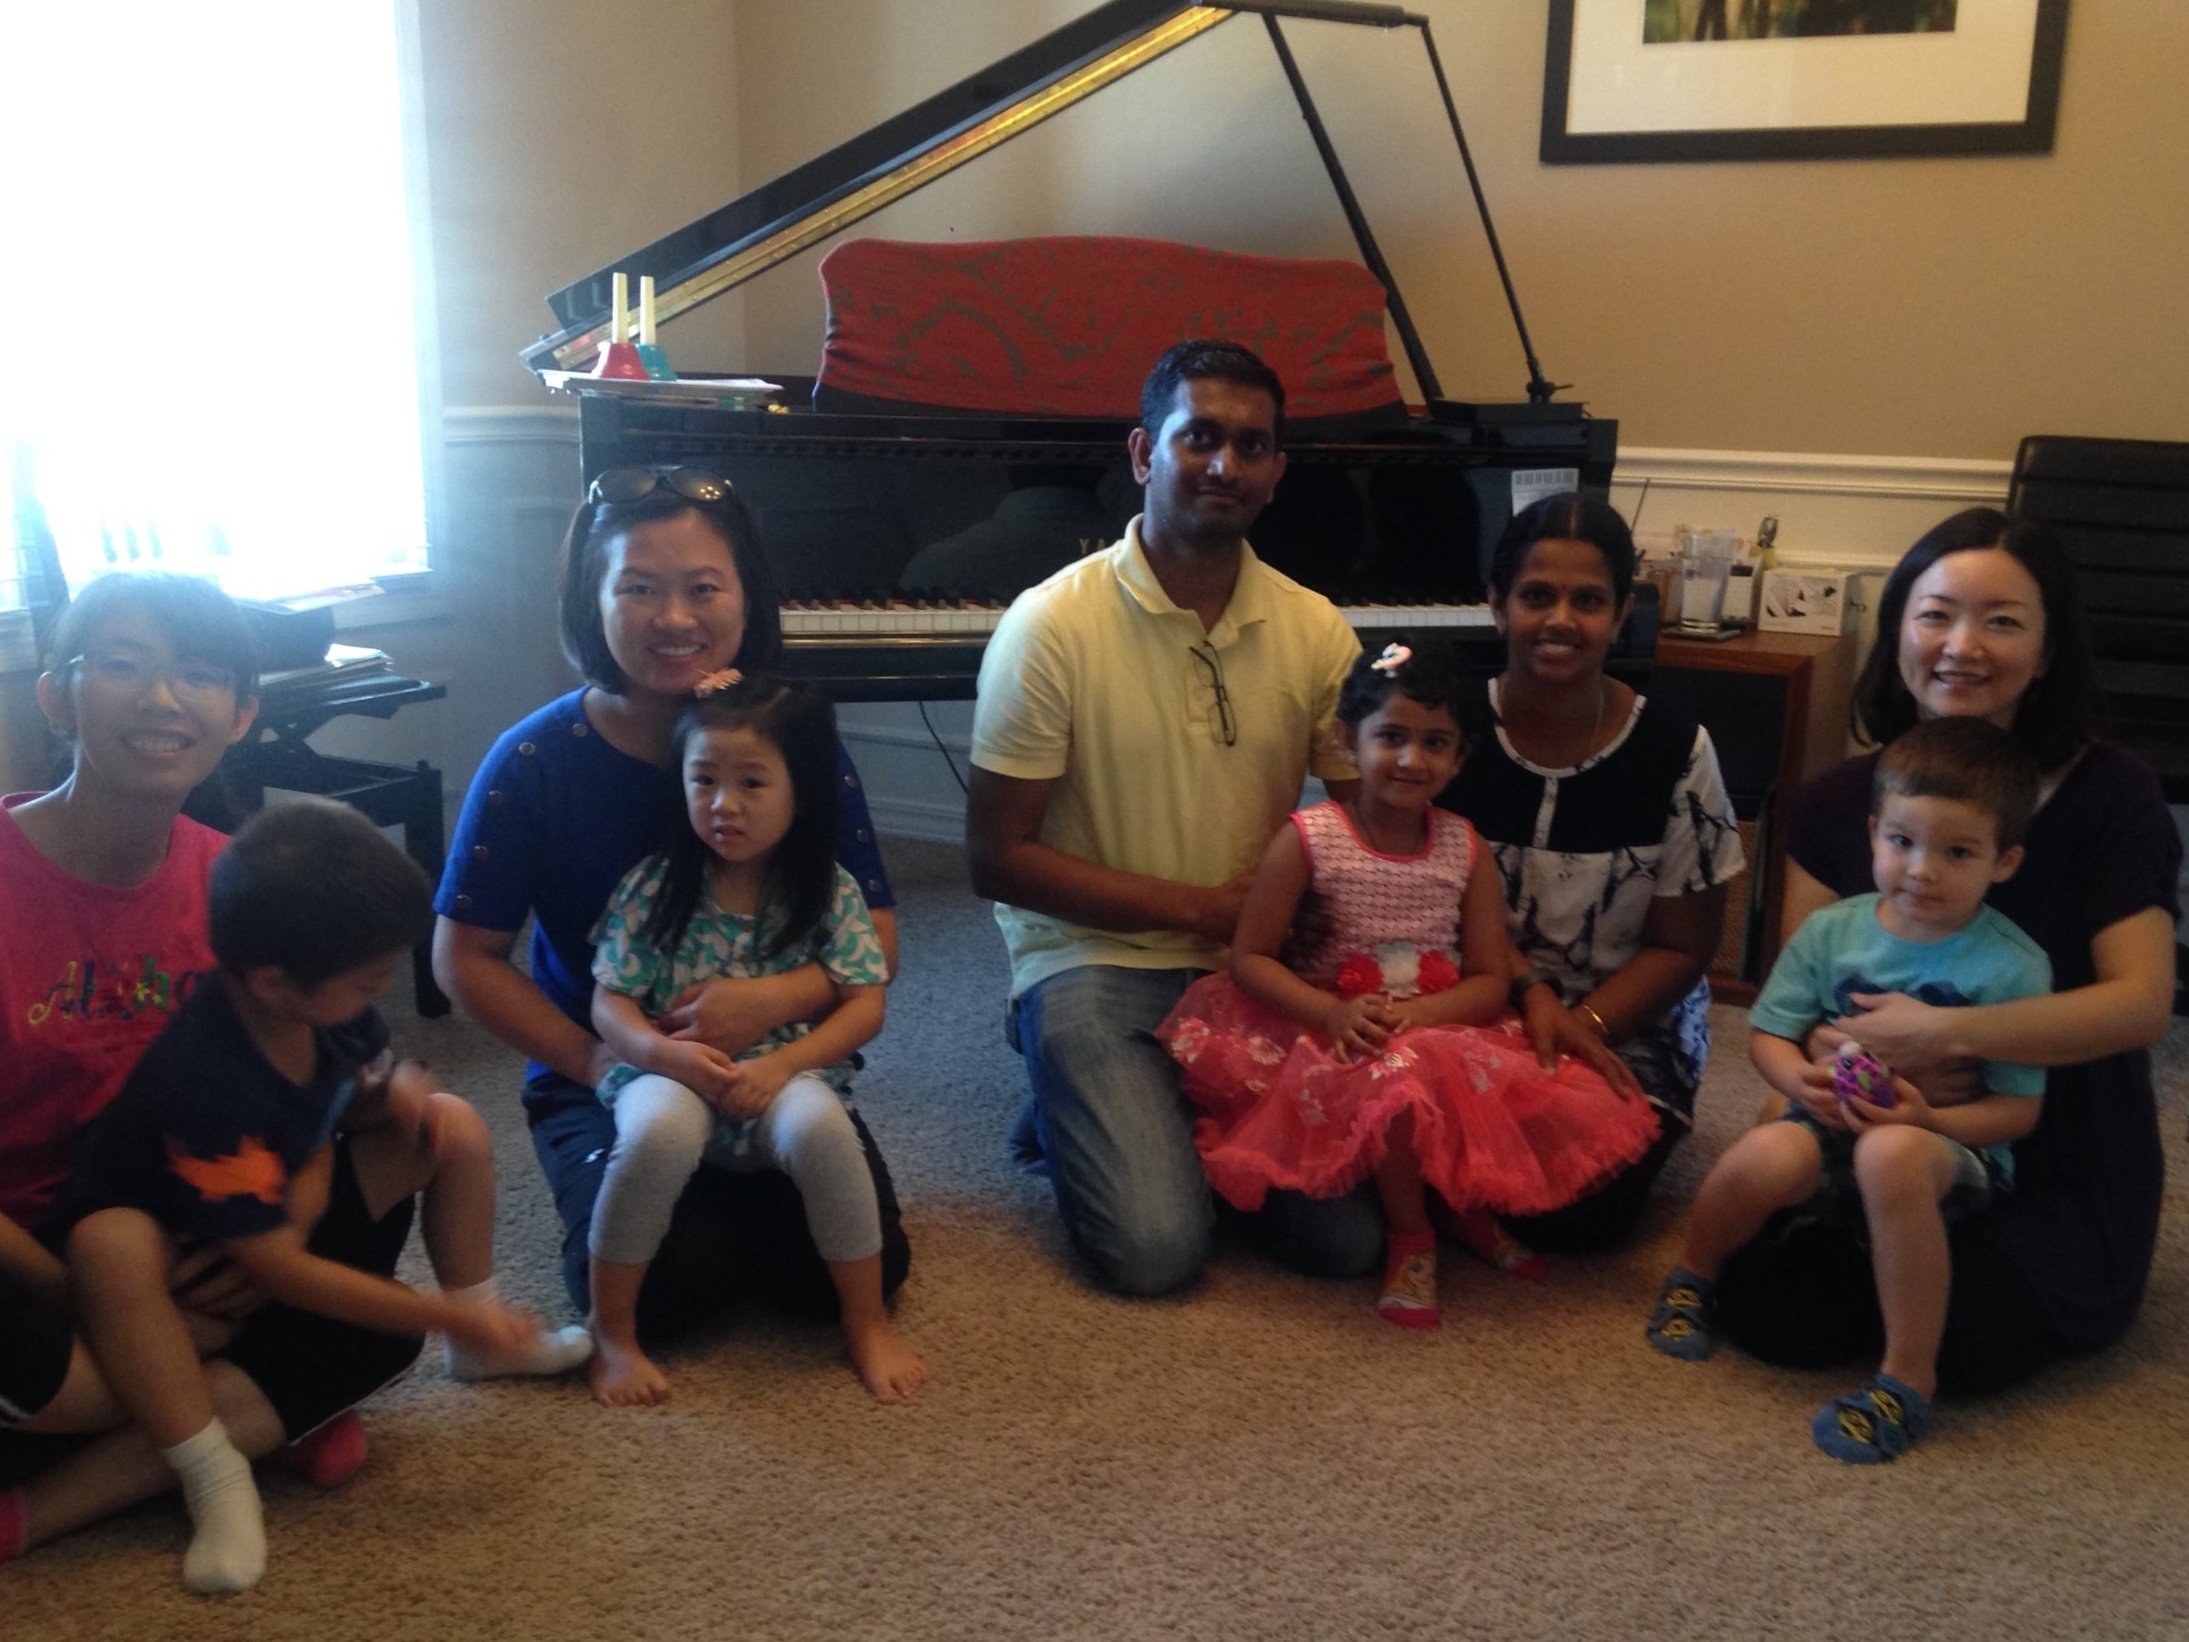 Toddlers & Me - Join our popular and enjoyable Little Mozart Program